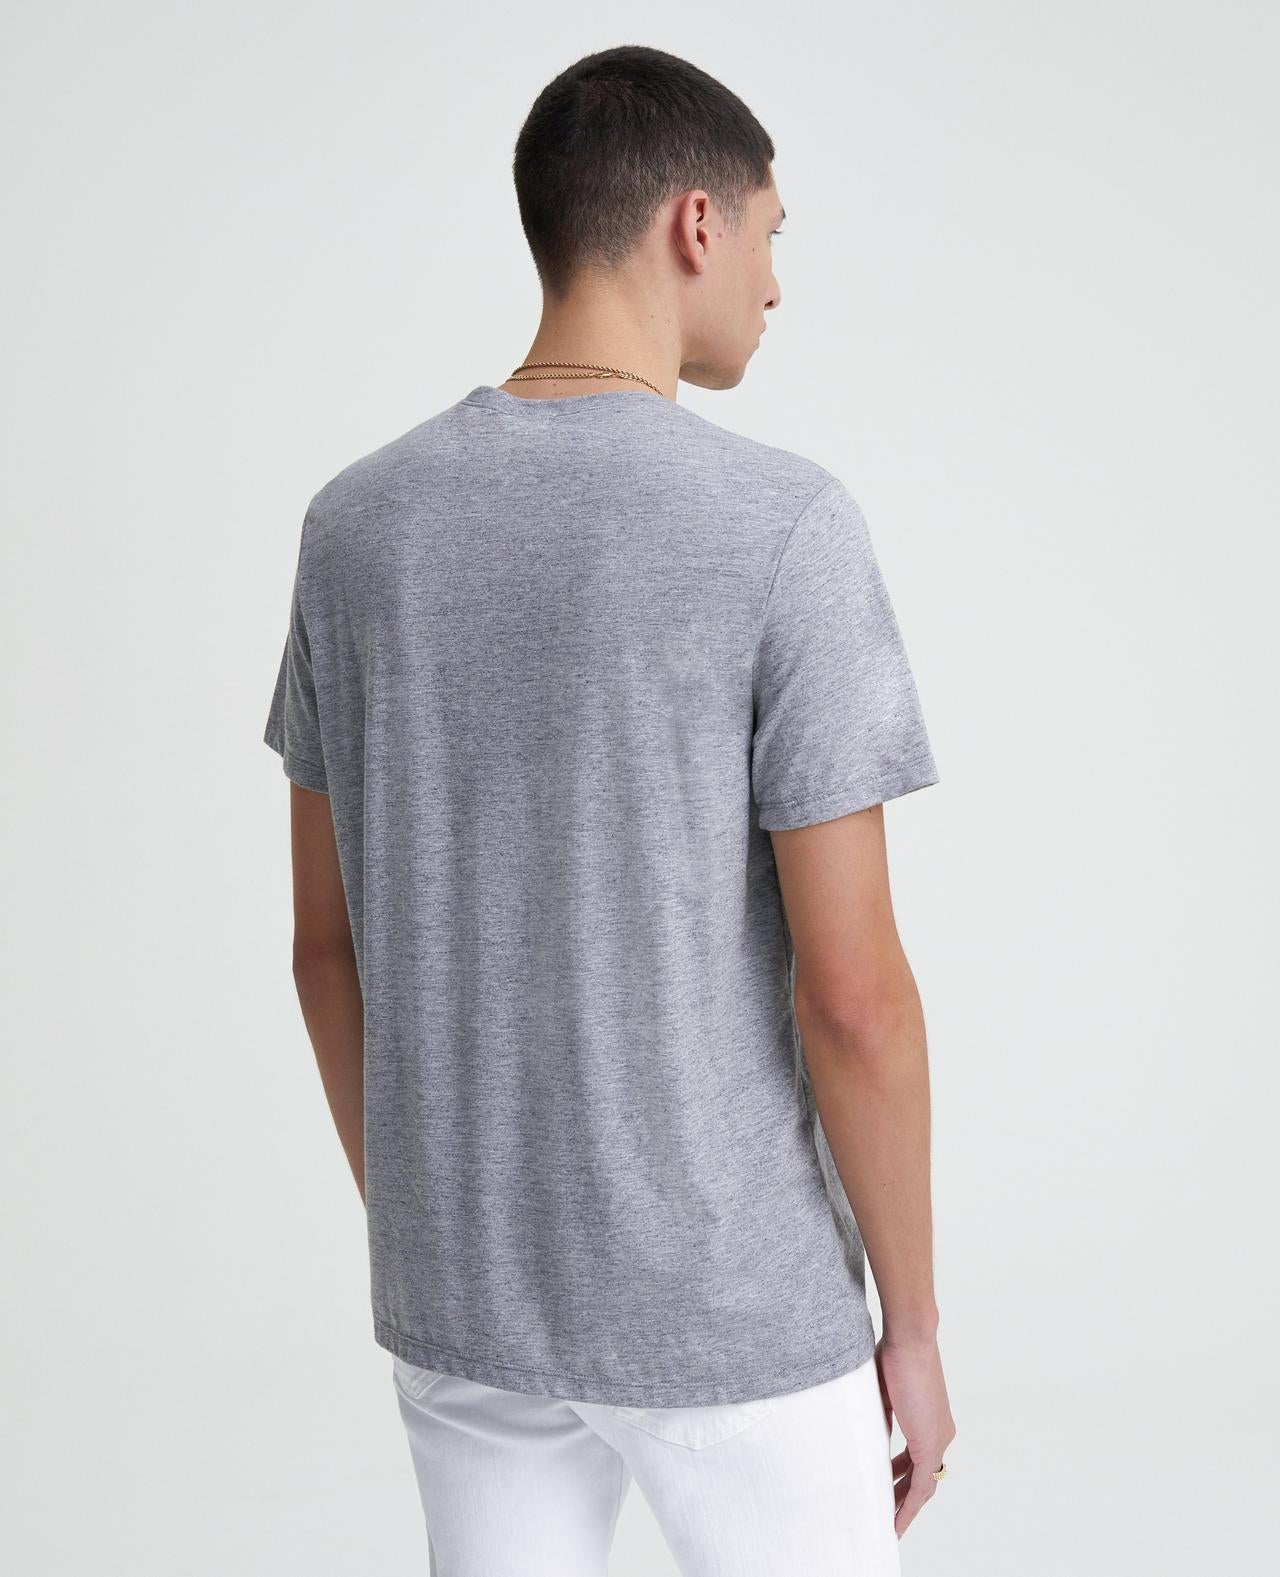 Bryce Crew - Heather Grey